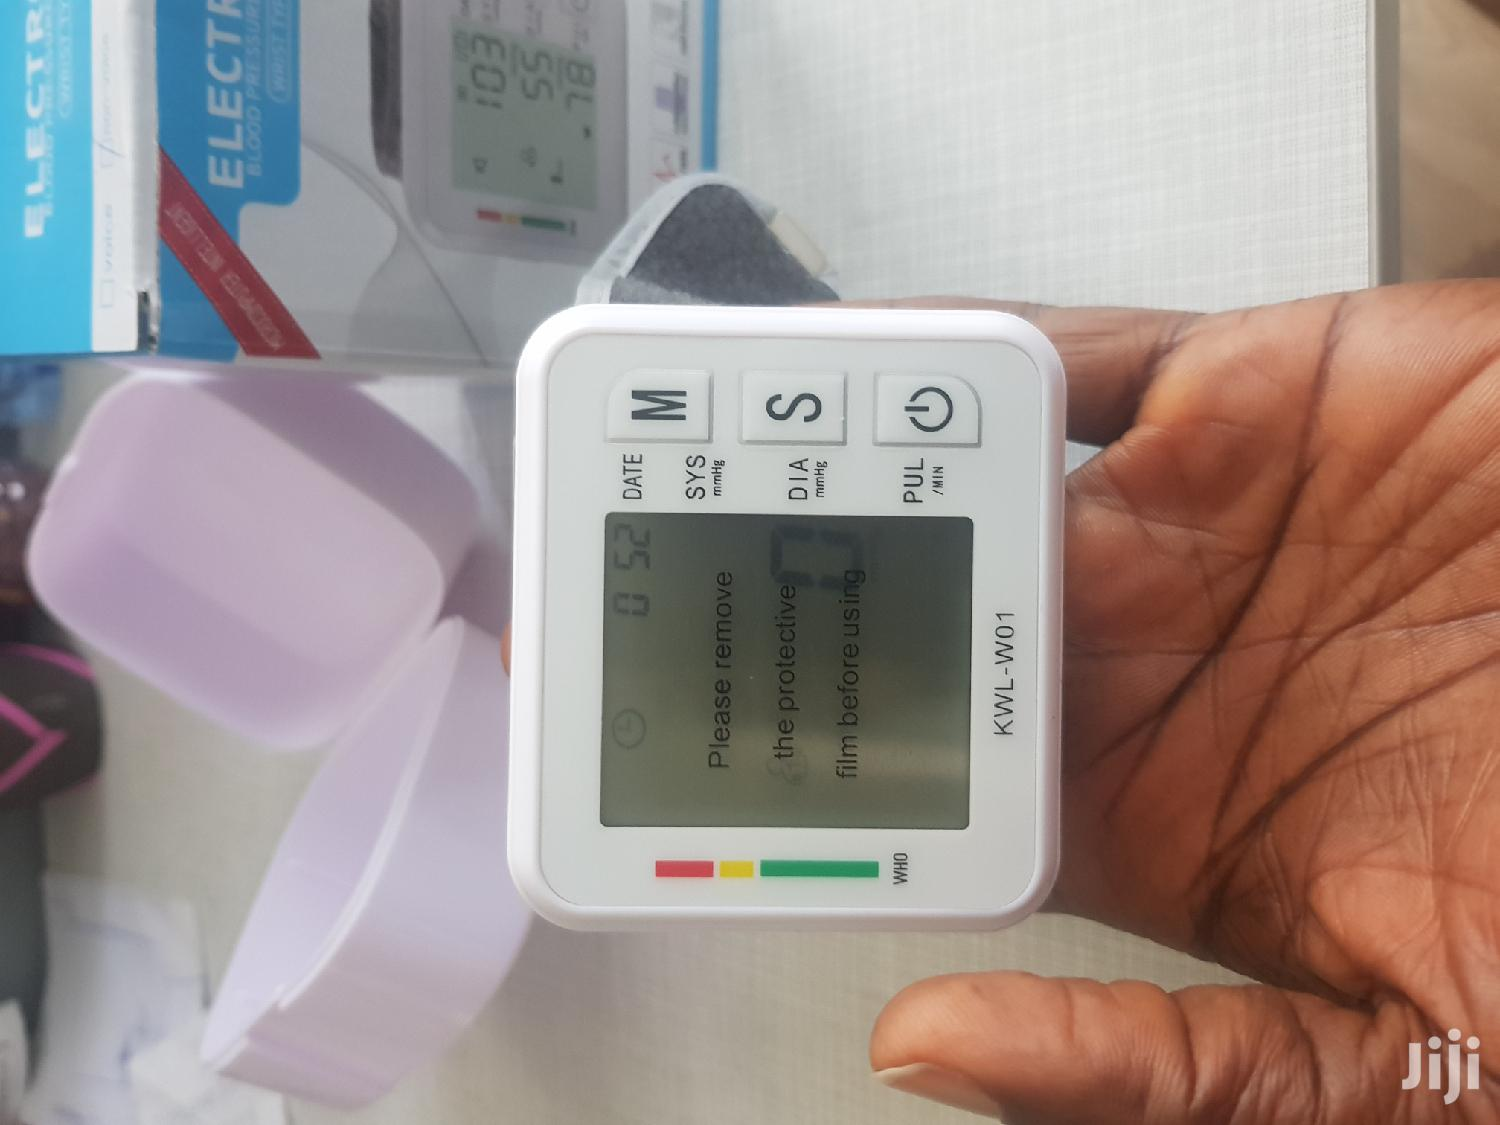 Blood Pressure Monitor | Tools & Accessories for sale in Tema Metropolitan, Greater Accra, Ghana